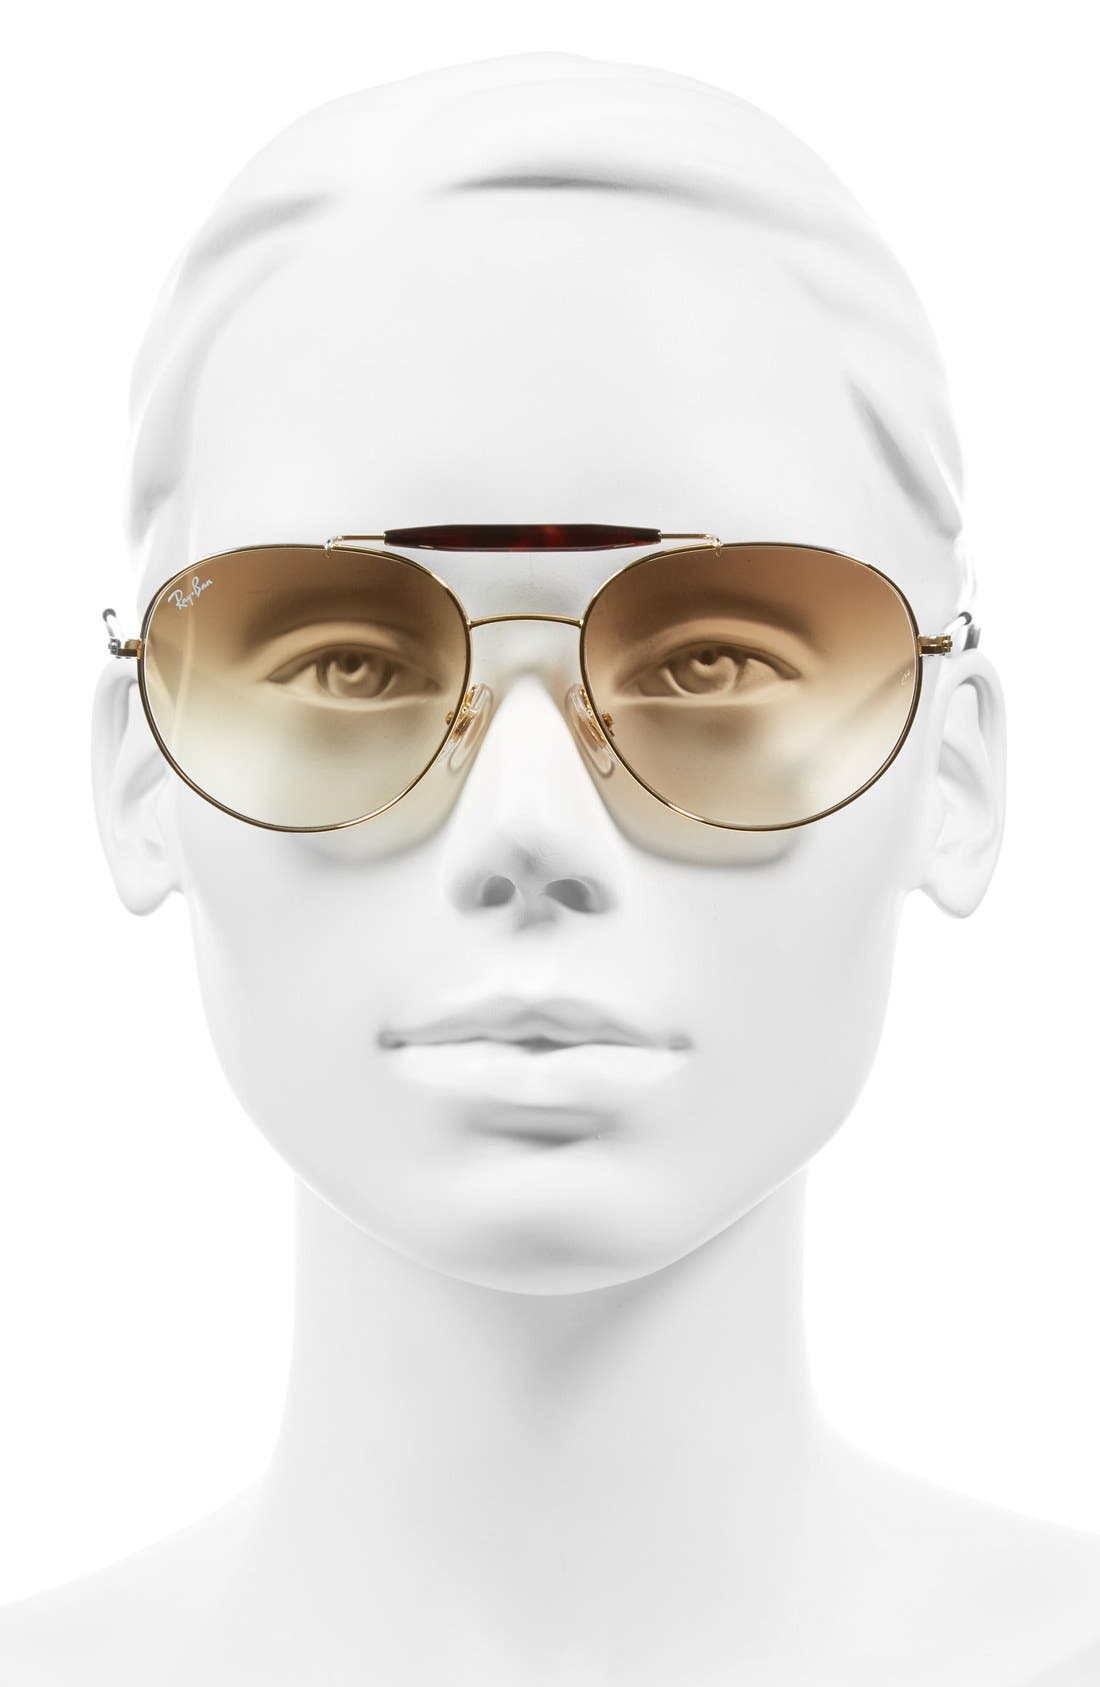 Highstreet 56mm Sunglasses,                             Alternate thumbnail 2, color,                             Brown Gradient